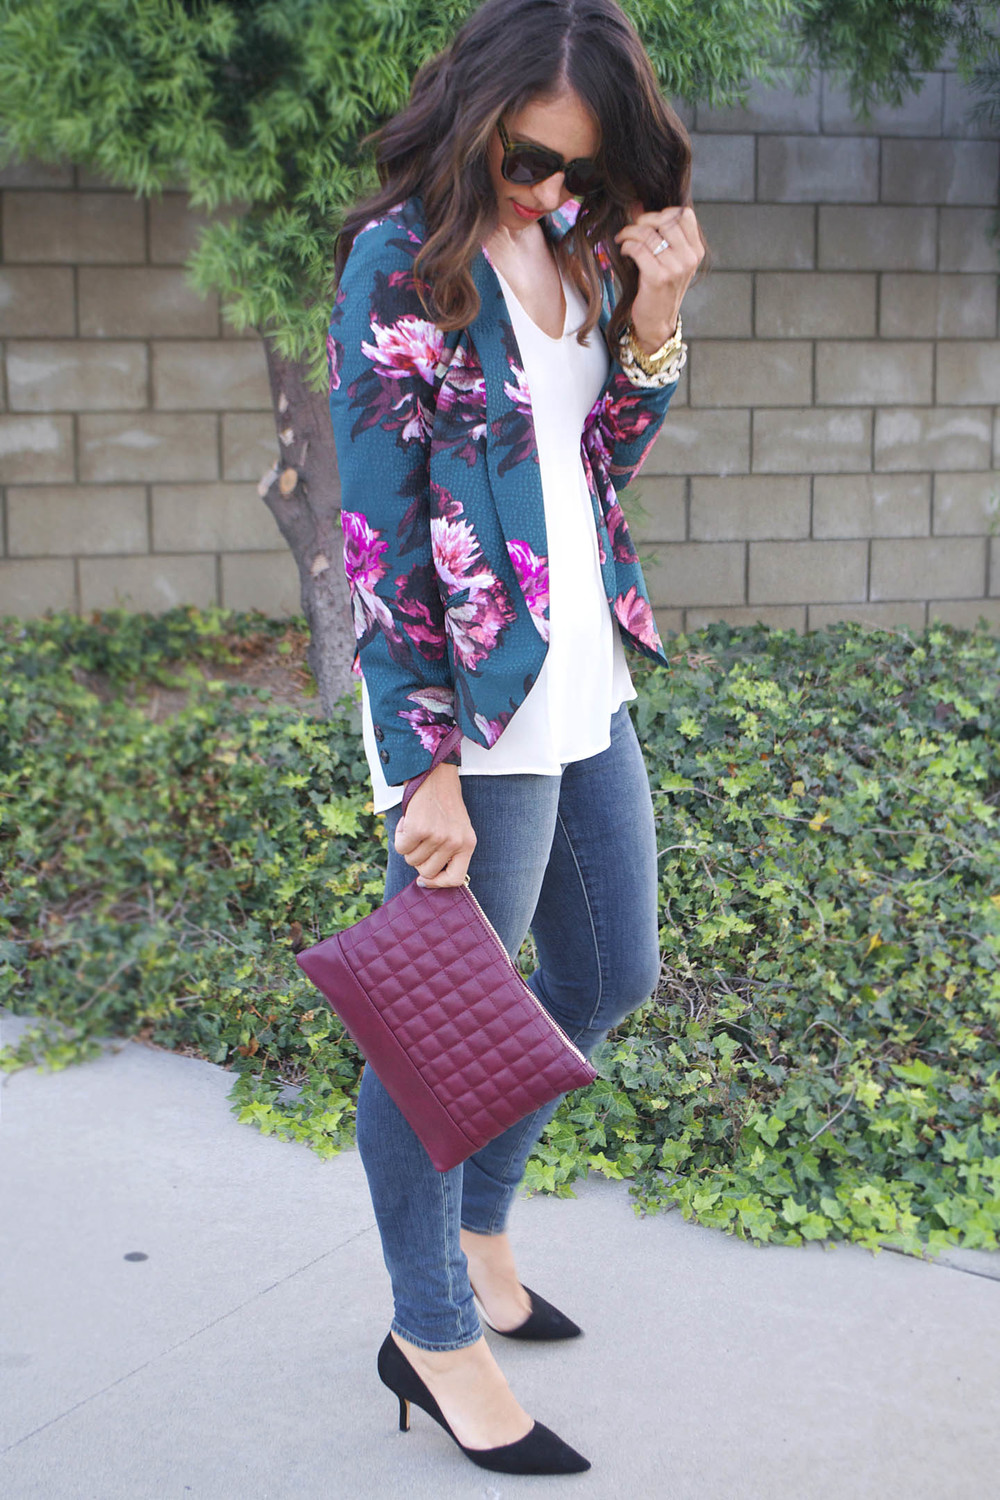 dark florals and burgundy